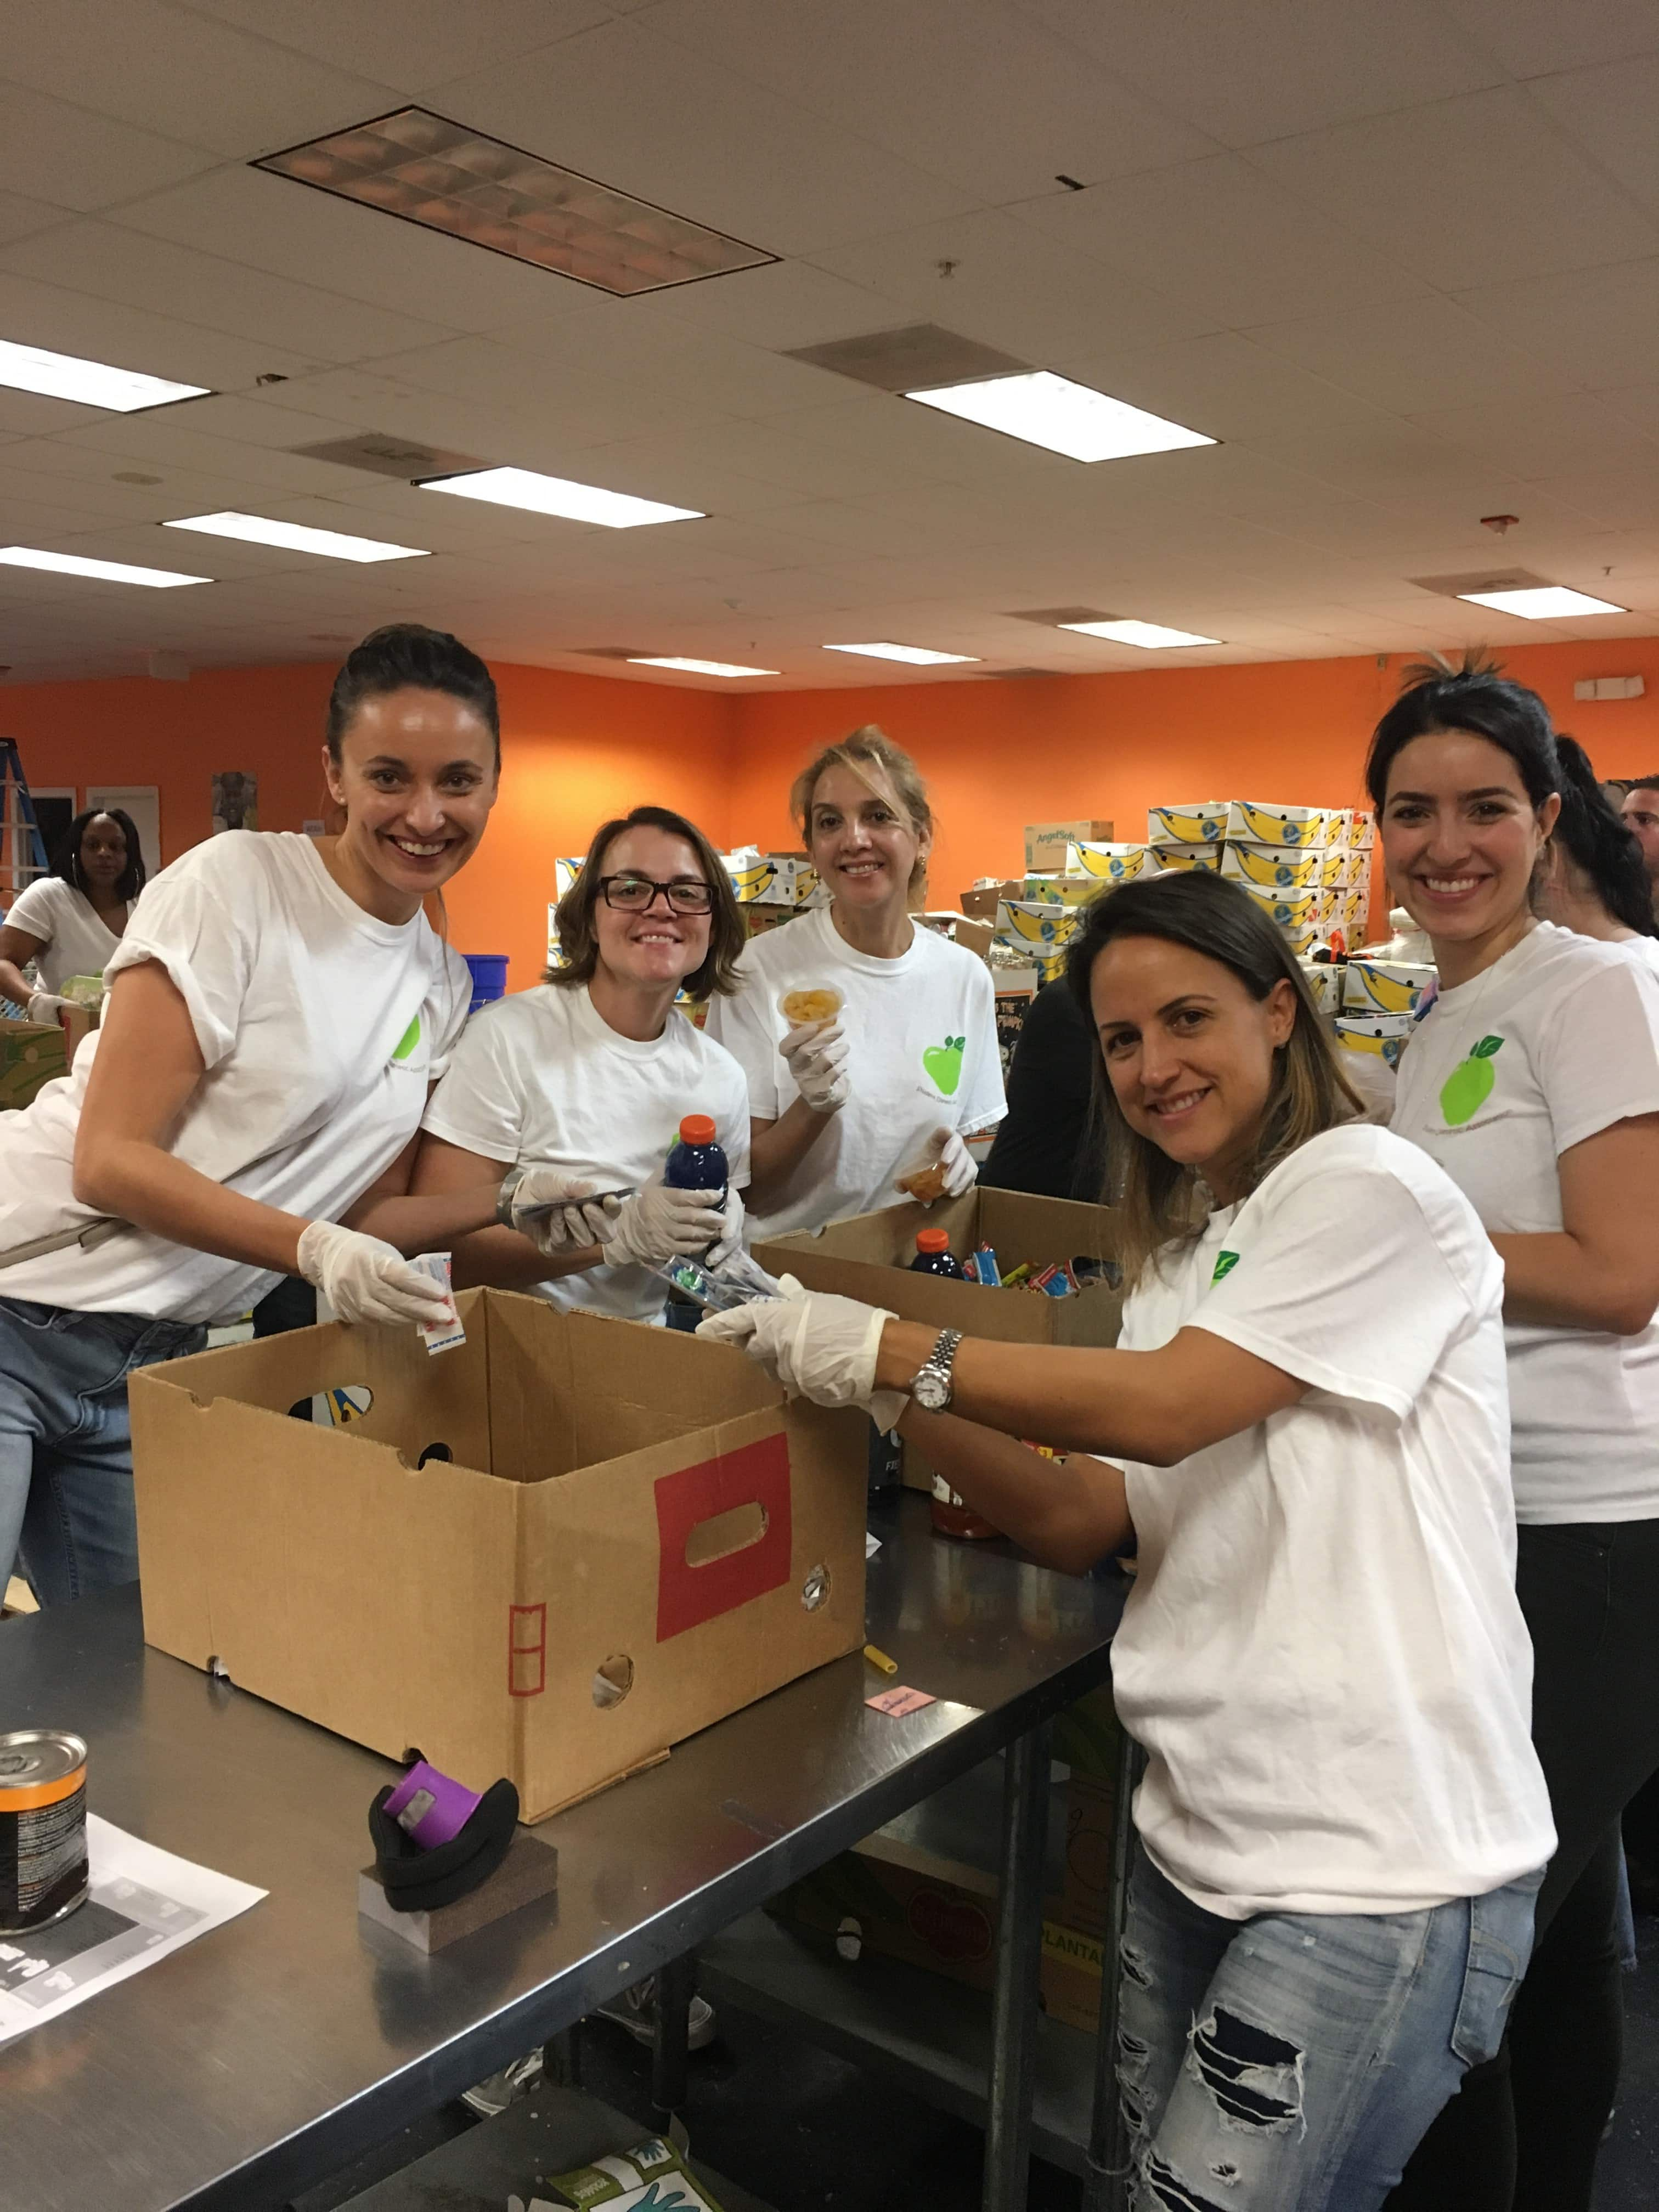 Dietetic & Nutrition Students at the Pembroke Pines Campus Volunteer with Feeding South Florida